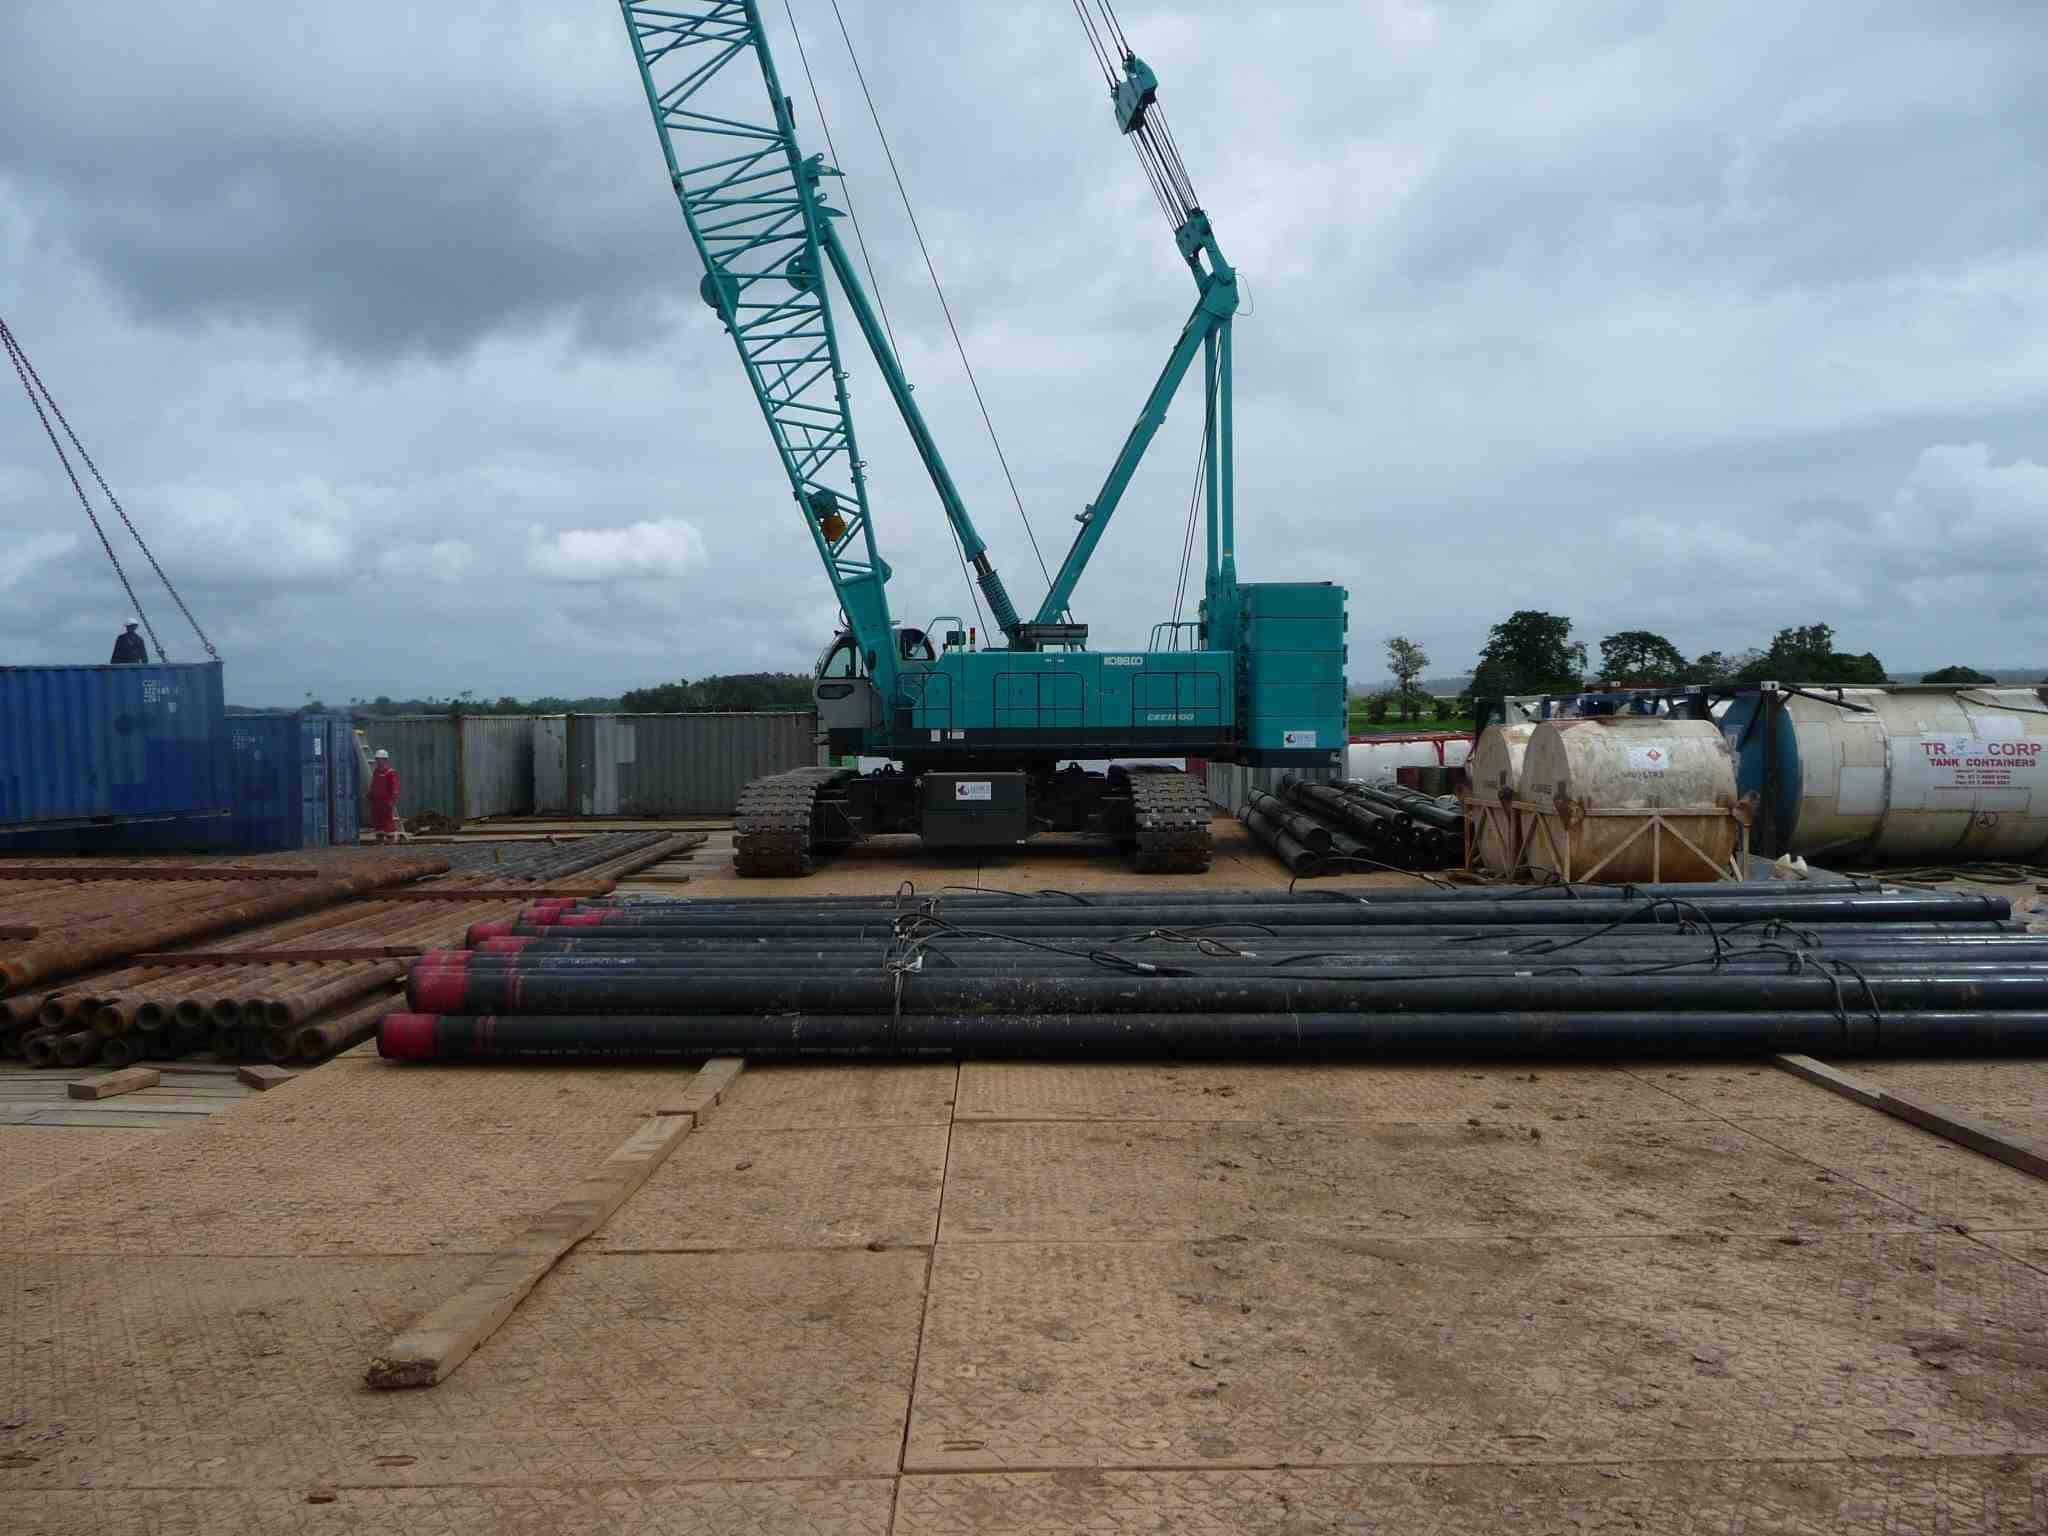 heli portable drilling rigs with Equipment Rentals on Hydraulic Stick Drill With Mast likewise Midnightsundrilling moreover Papua New Guinea as well 3275695 Sell Key Energy Services And Buy High Arctic Energy Services likewise Equipment Rentals.